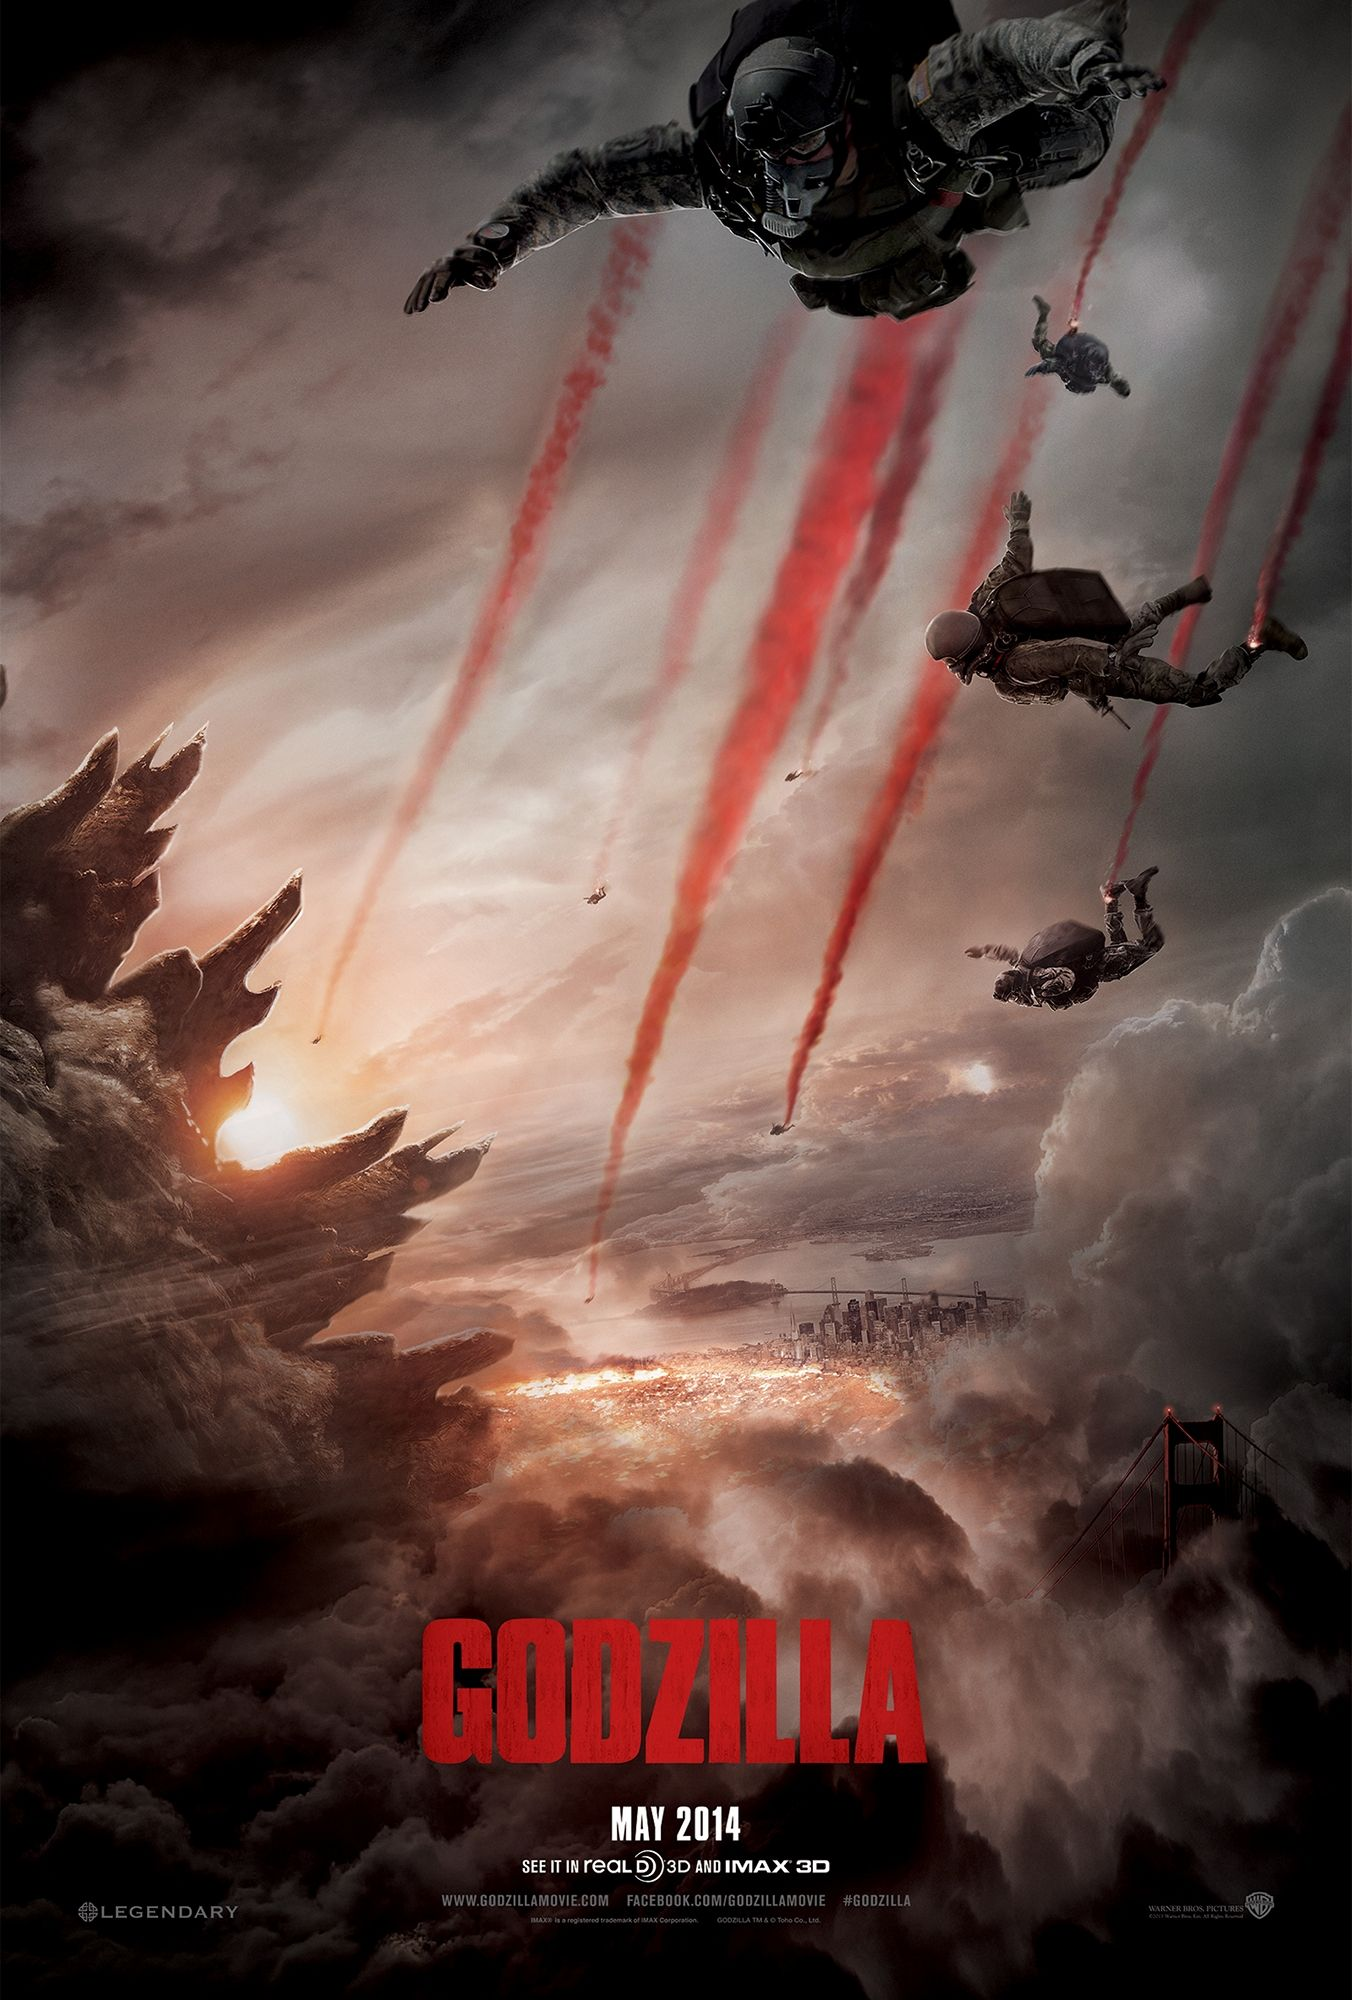 Godzilla 2014 theatrical teaser poster